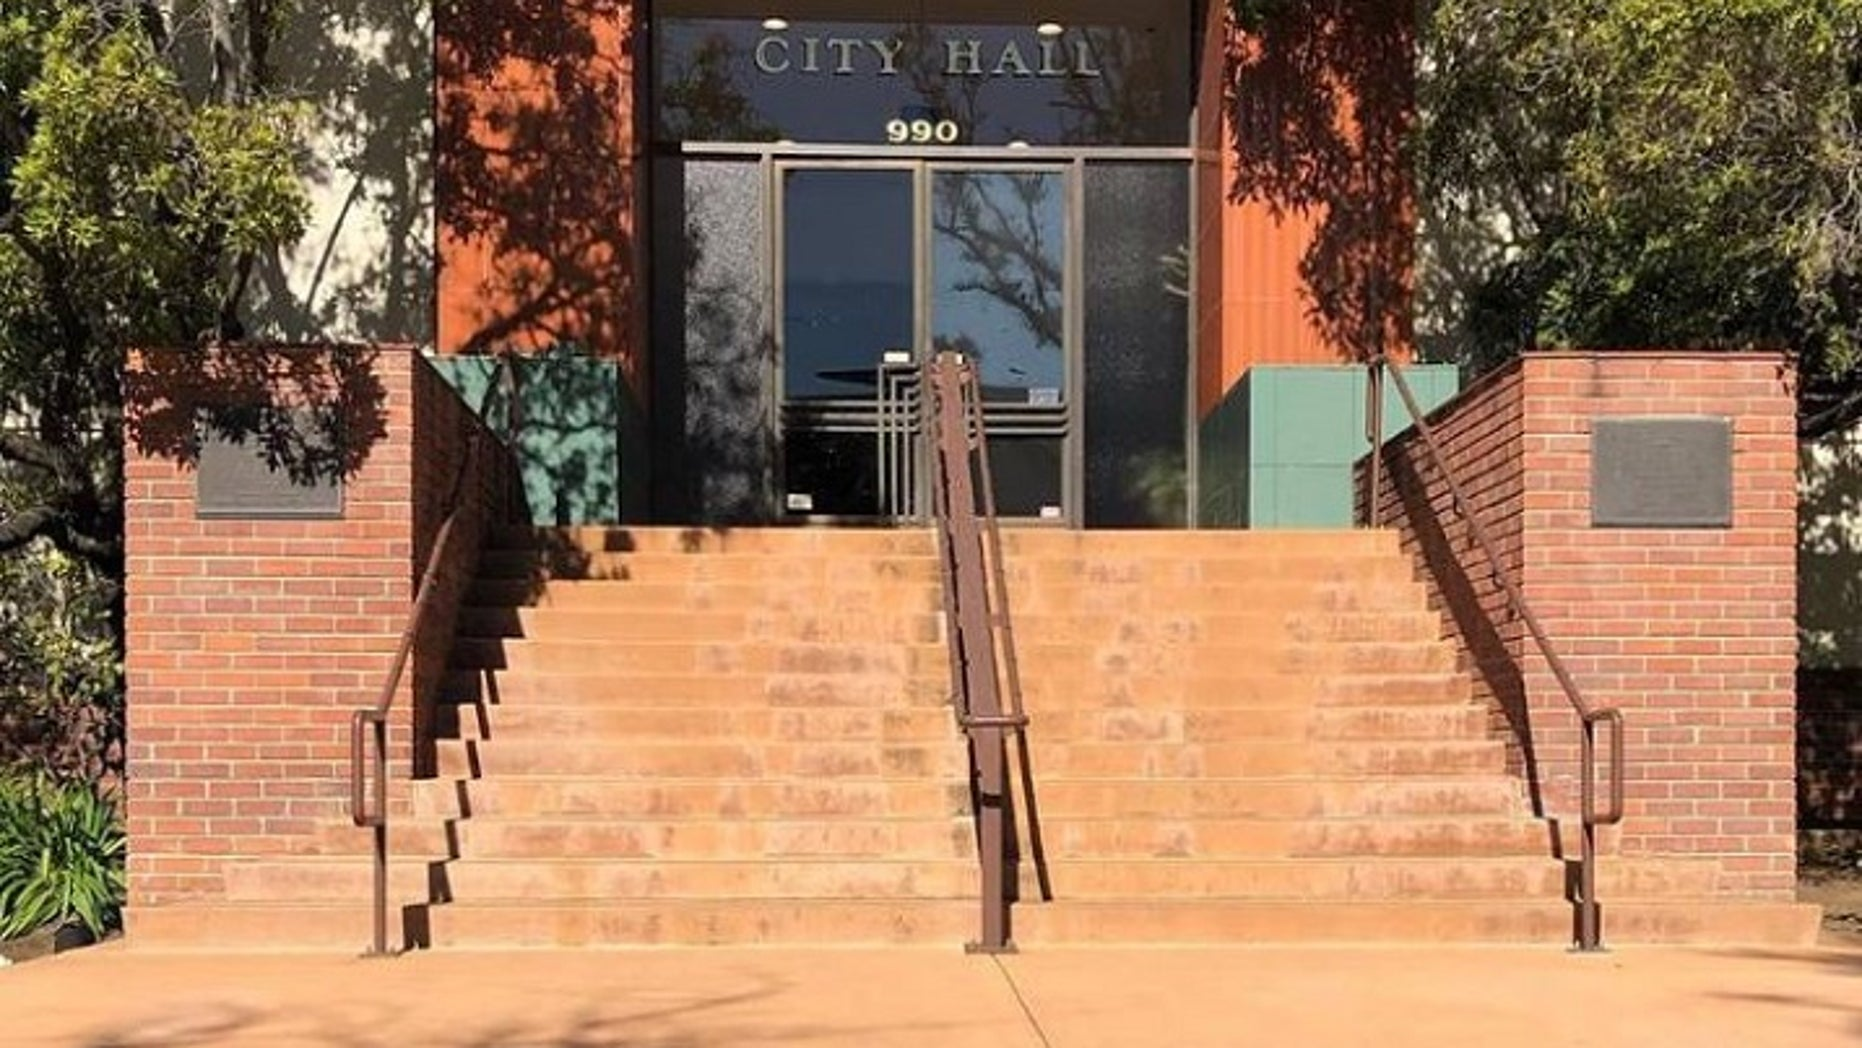 A San Luis Obispo city employee was placed on leave after a video showed him assaulting a woman at a bar resurfaced online. (City of San Luis Obispo)